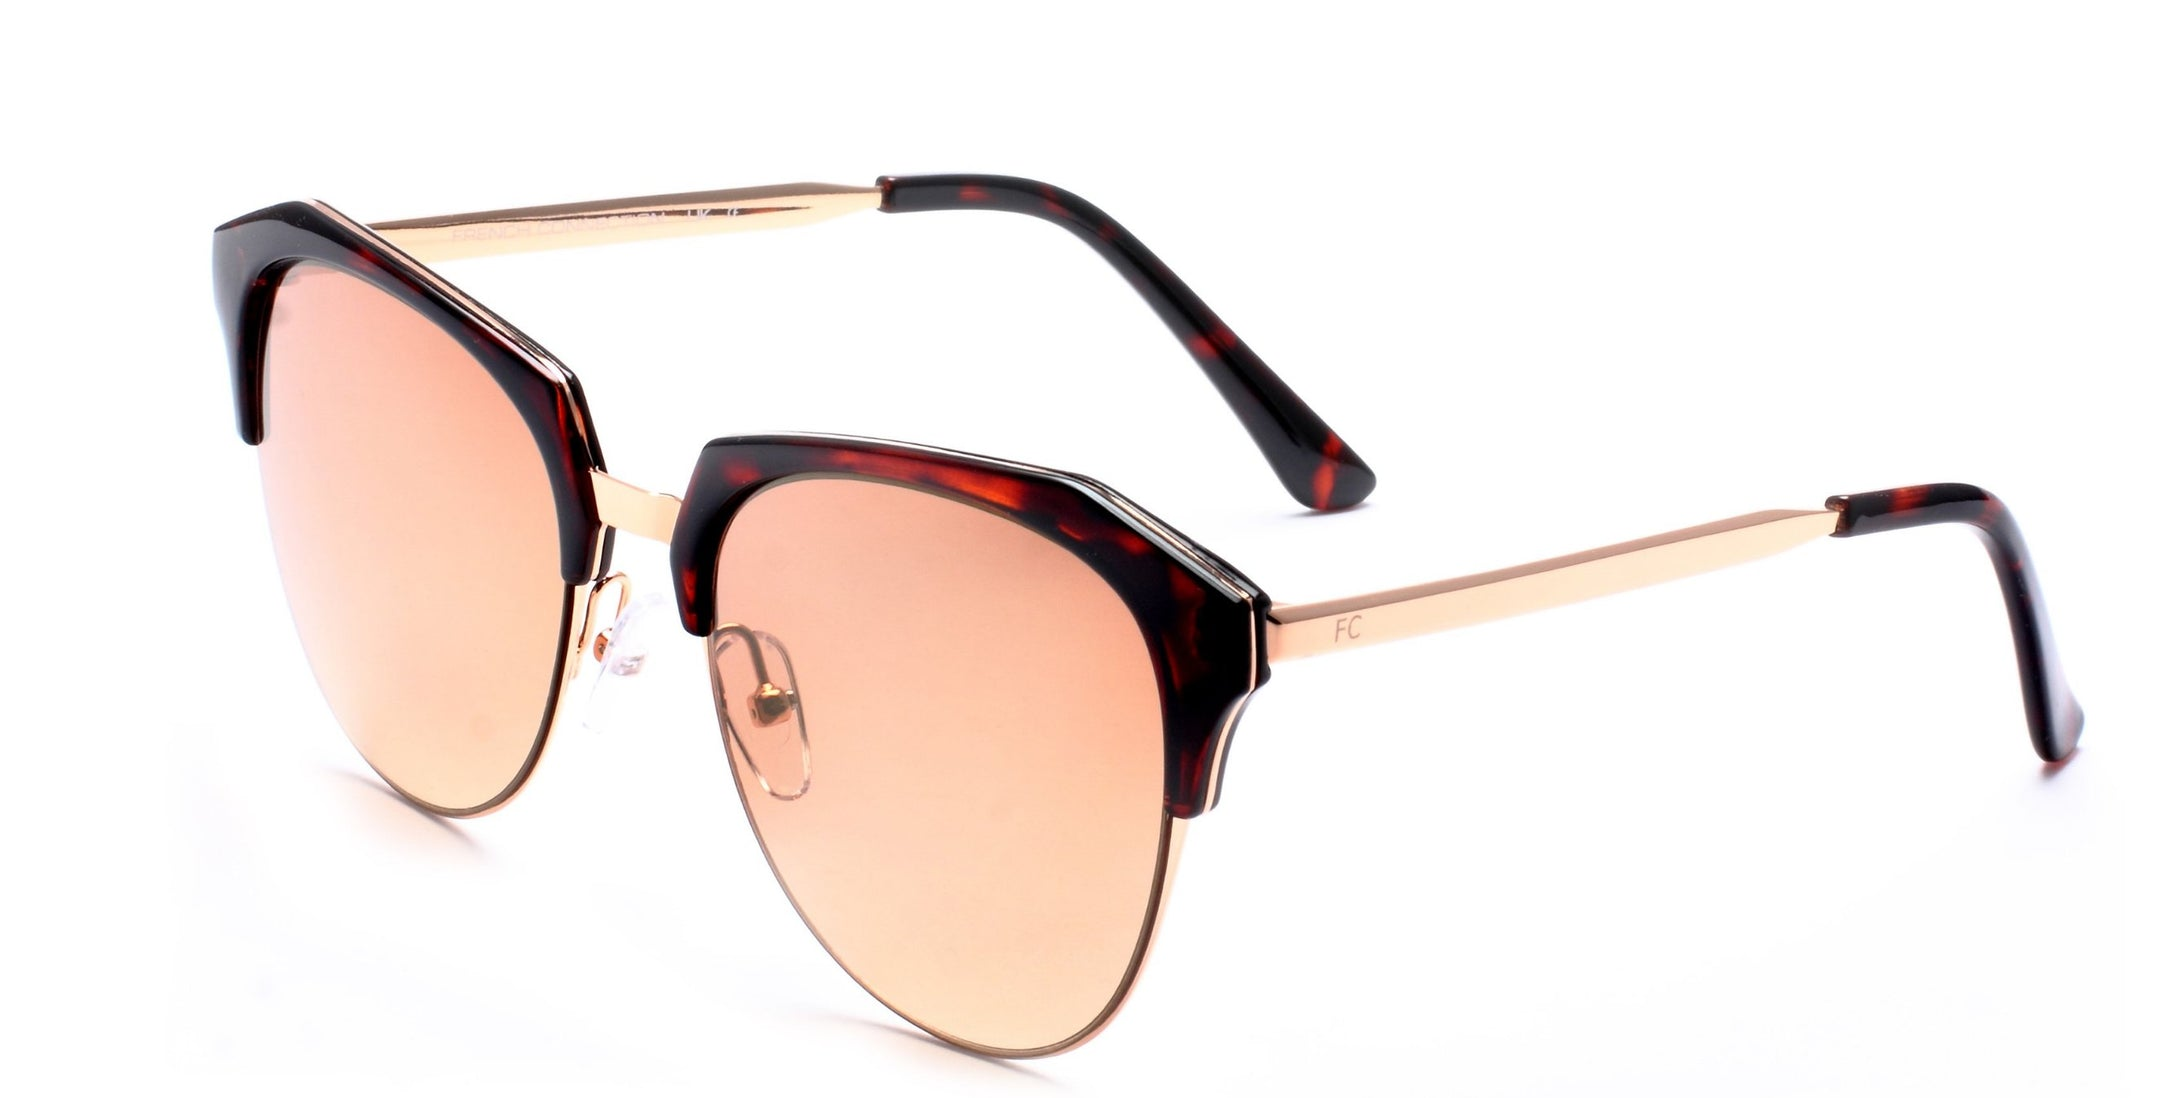 French Connection FC-7405-C2 Gold Brown Round Sunglasses